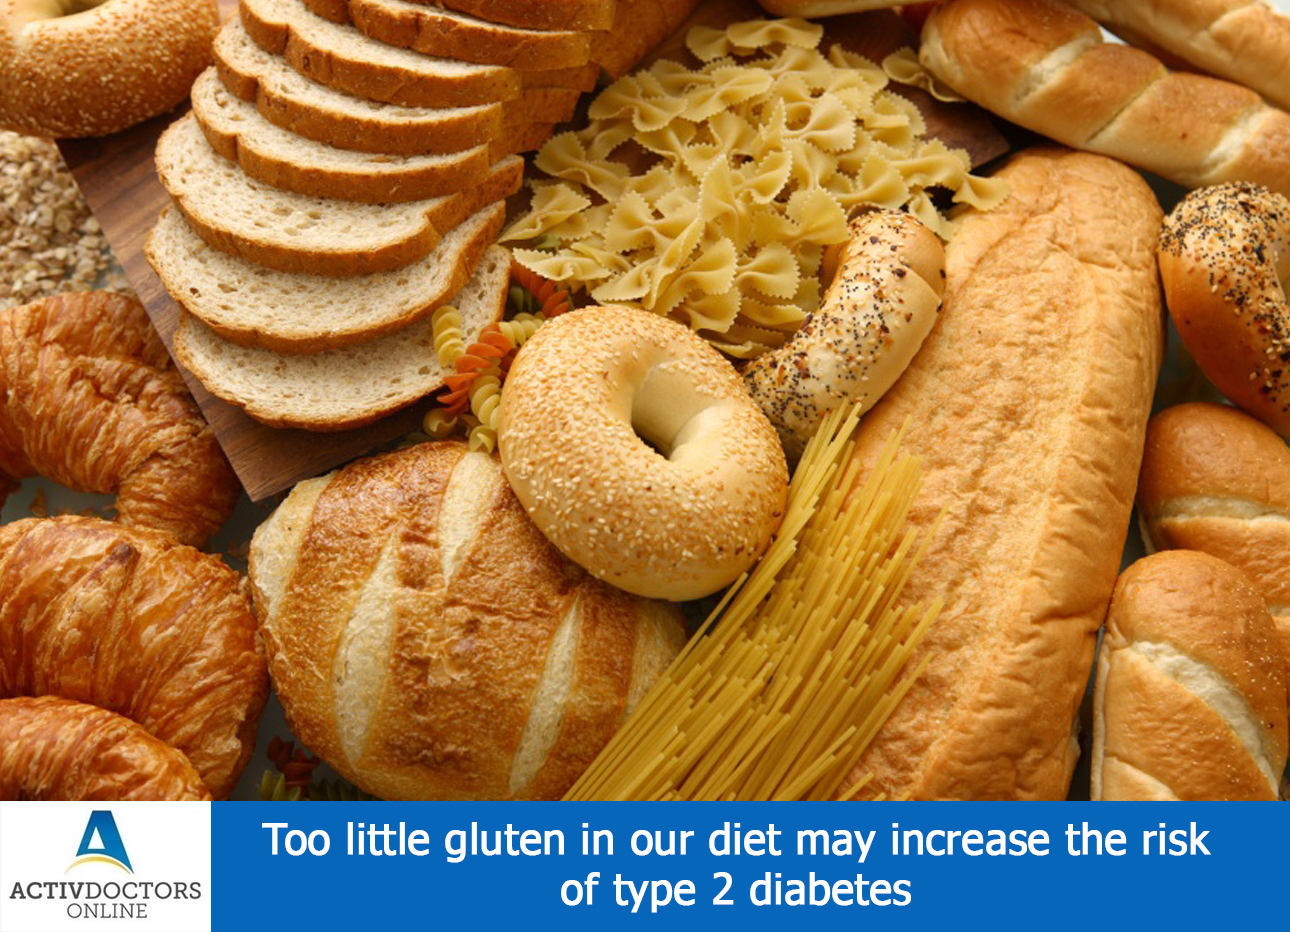 Too Little Gluten In Our Diet May Increase The Risk Of Type 2 Diabetes